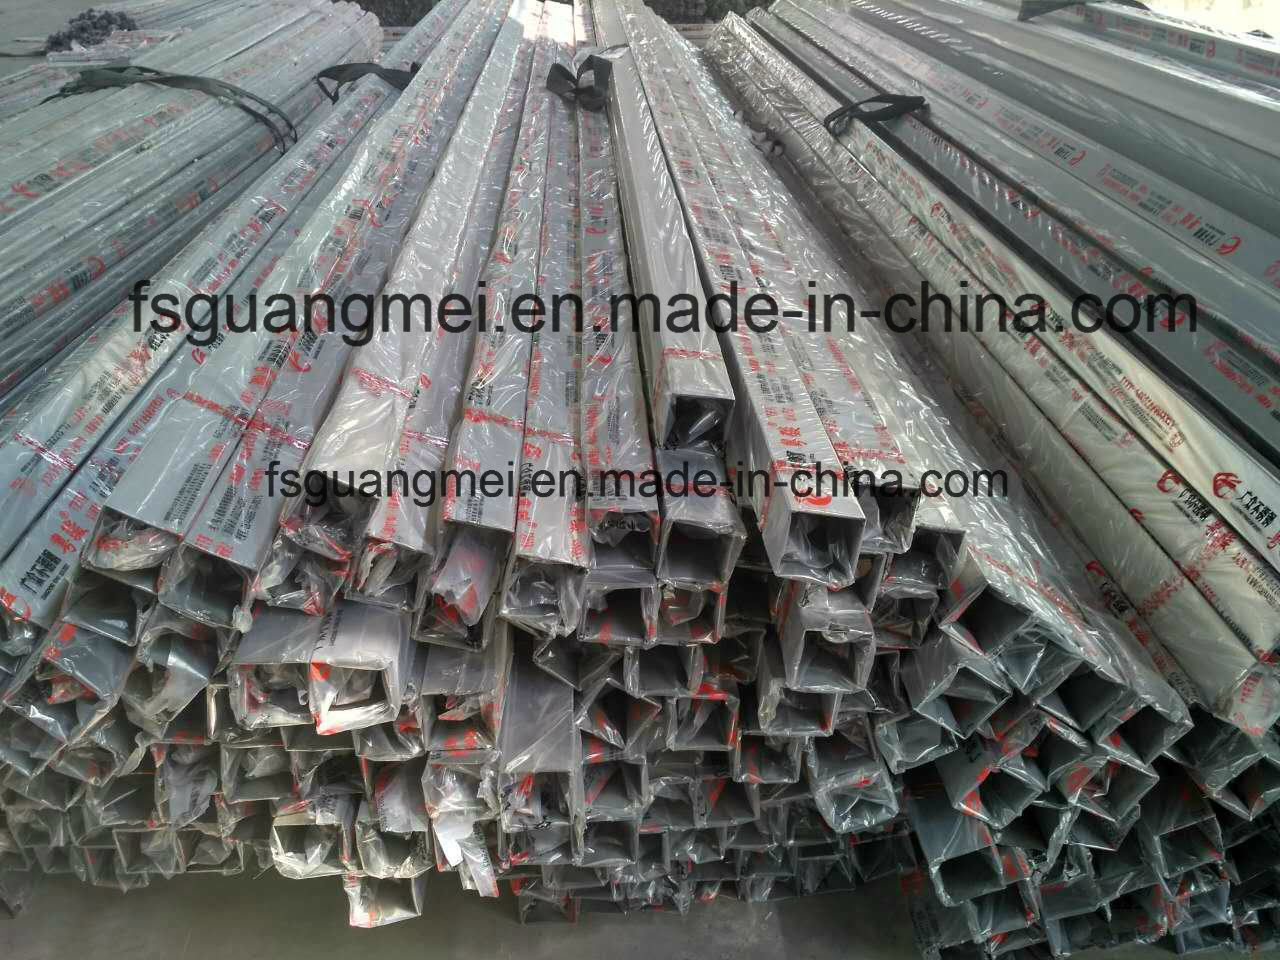 Decorative Stainless Steel Pipe for Light Industry and Construction Industry